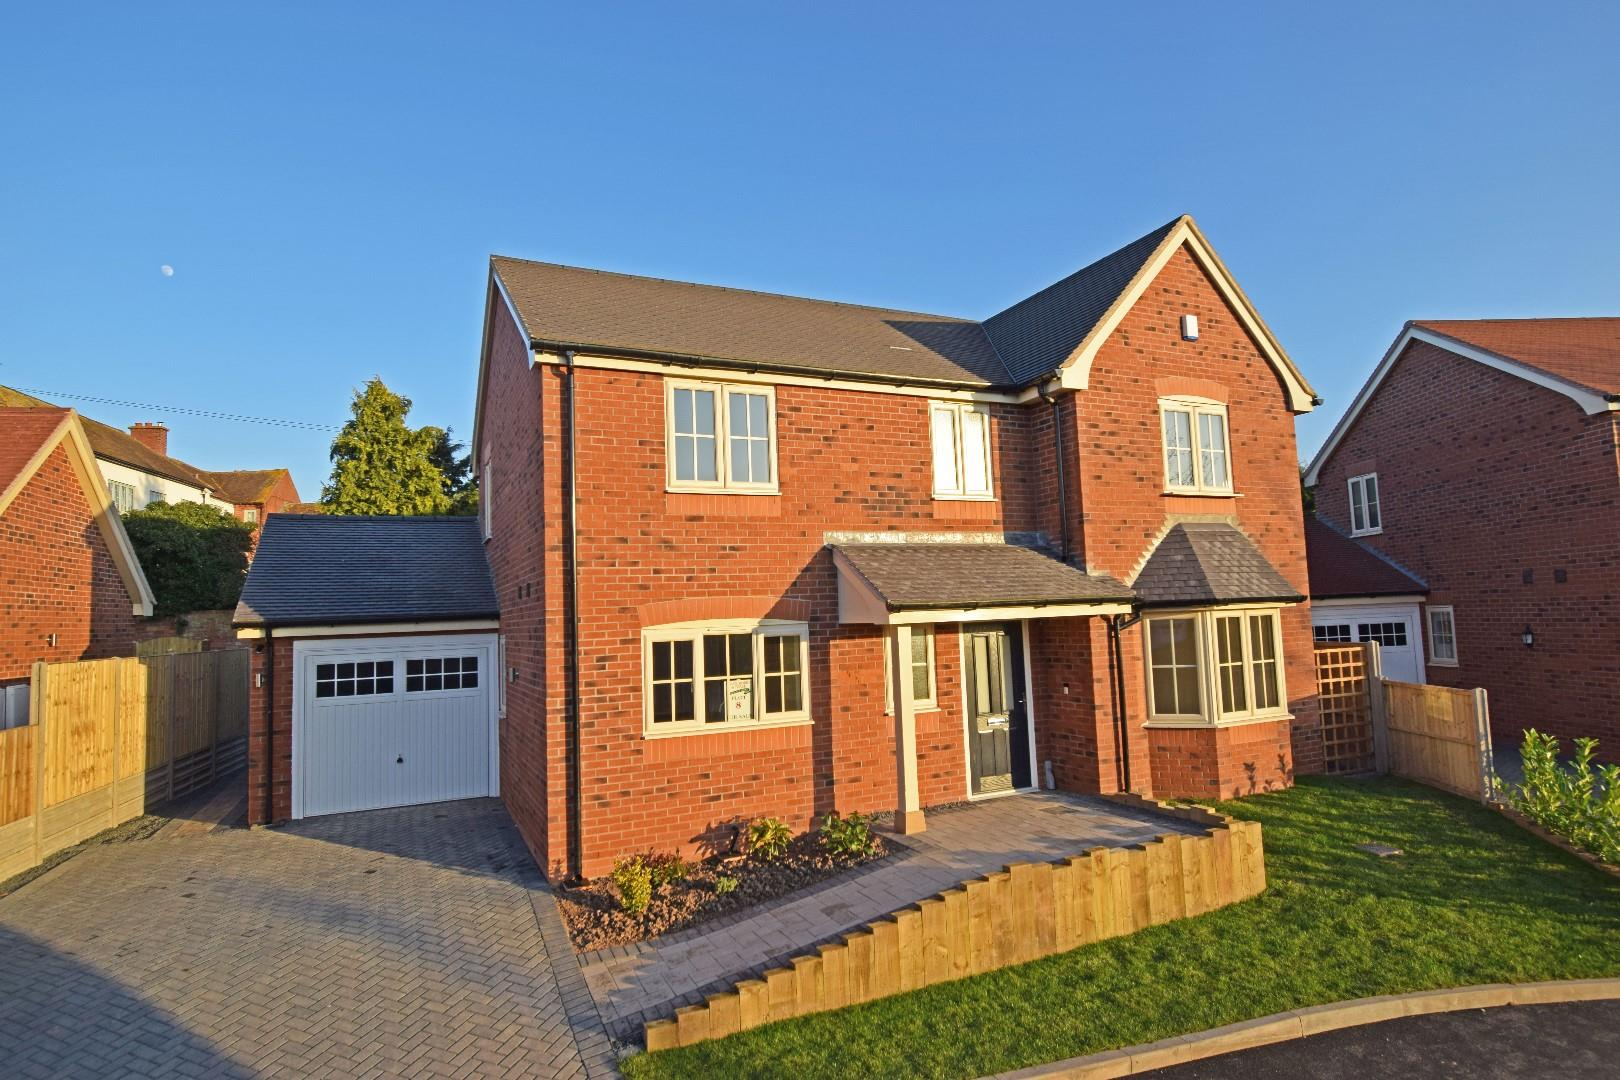 (Plot 8) 8 Peachley Court Close, Peachley Lane, Lower Broadheath, Worcestershire, WR2 6SA